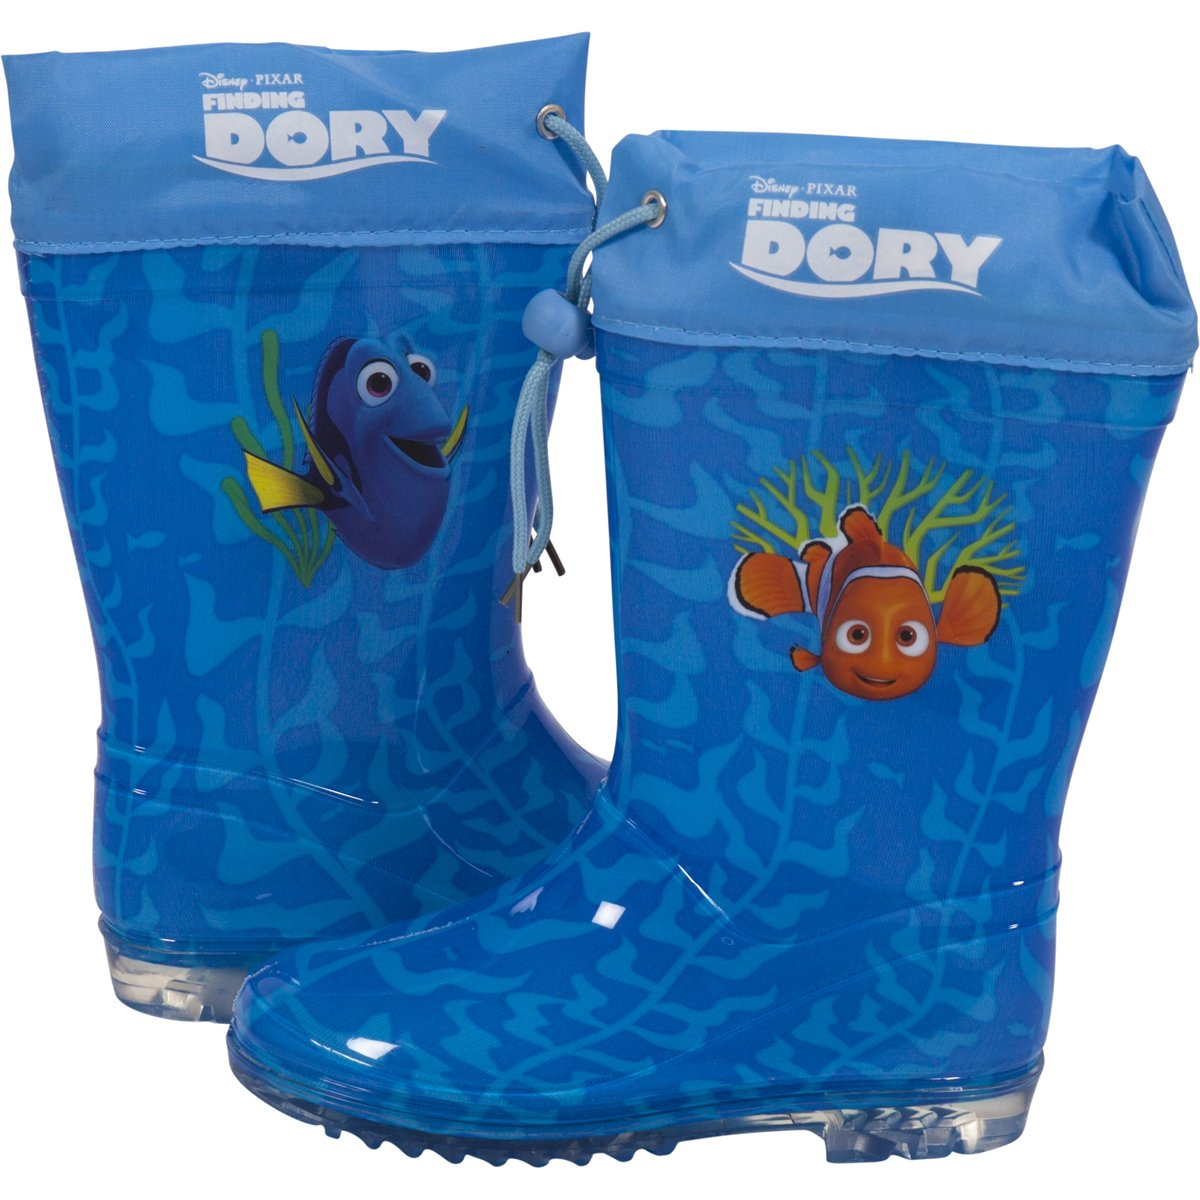 703e9c0fbb2 Disney Finding Dory Kids Waterproof Rubber Wellington Wellies Slip-On  Winter Character Rain Gumboots Boots for Girls & Boys Snow Welly for  Children & ...